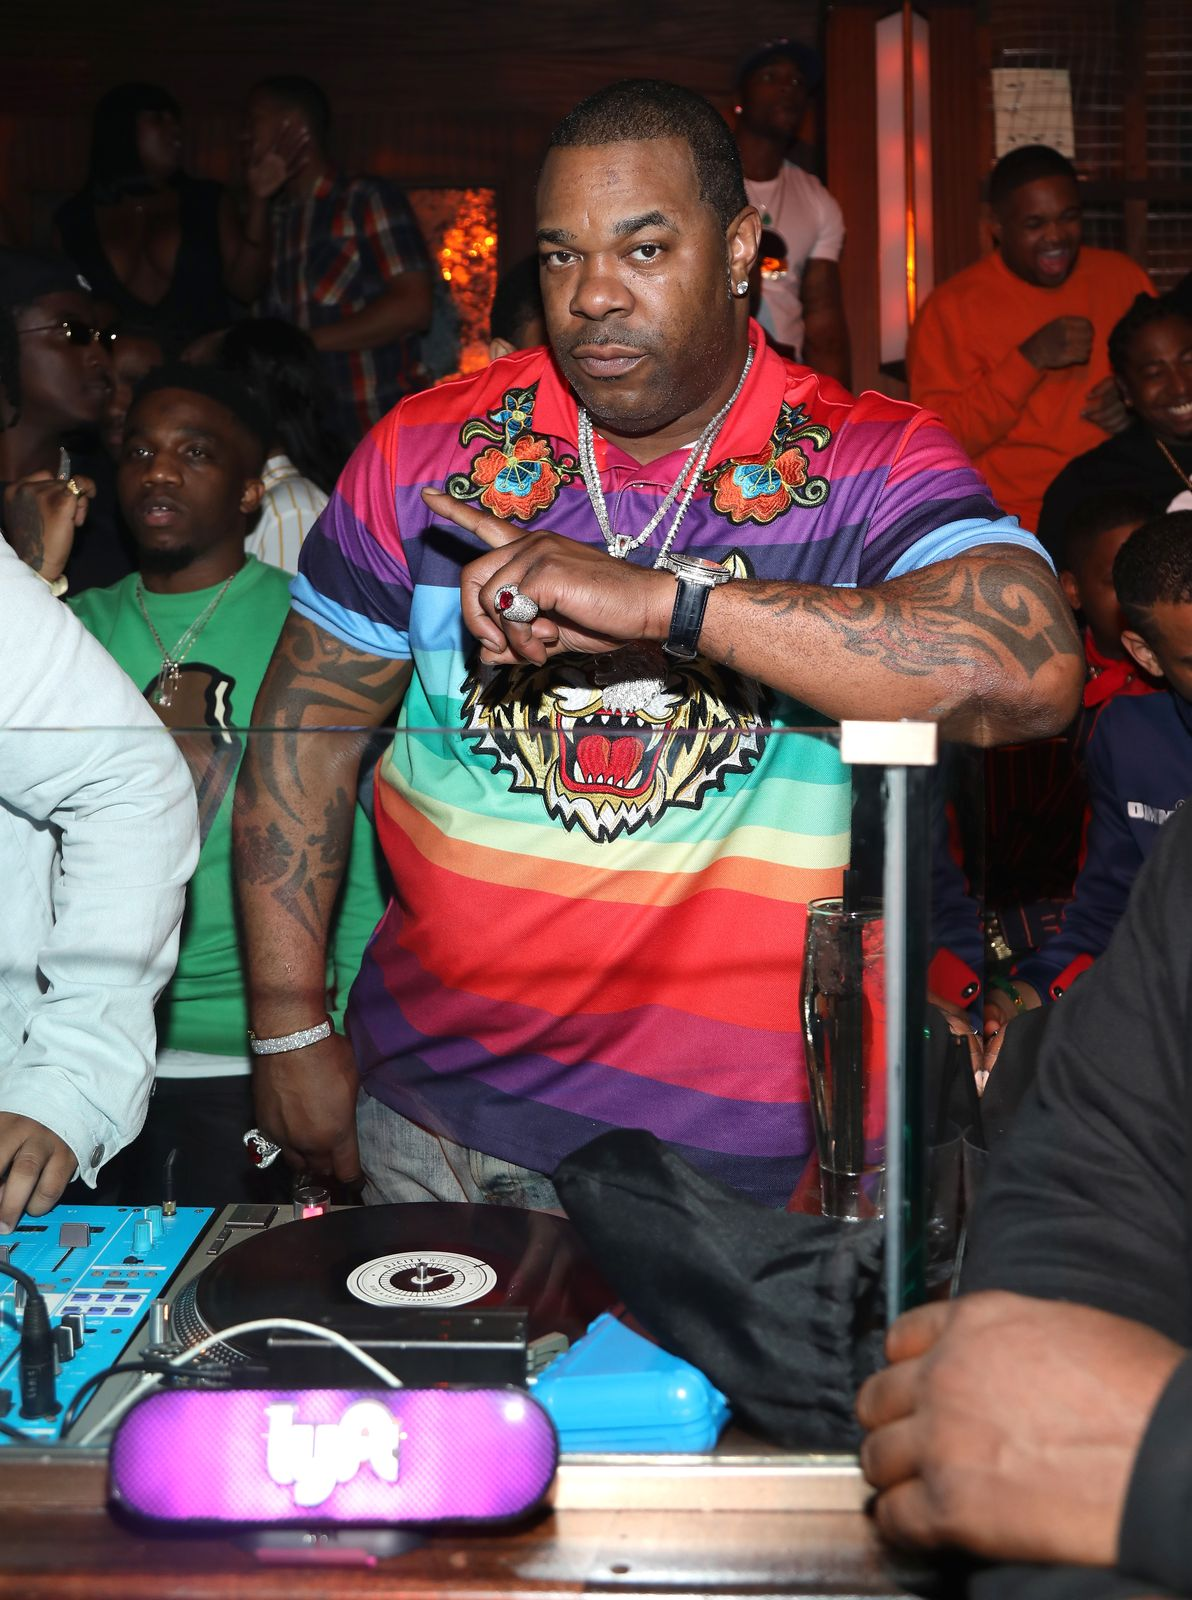 Busta Rhymes attends IGA X BET Awards Party 2018 on June 23, 2018 in Los Angeles, California. | Photo: Getty Images